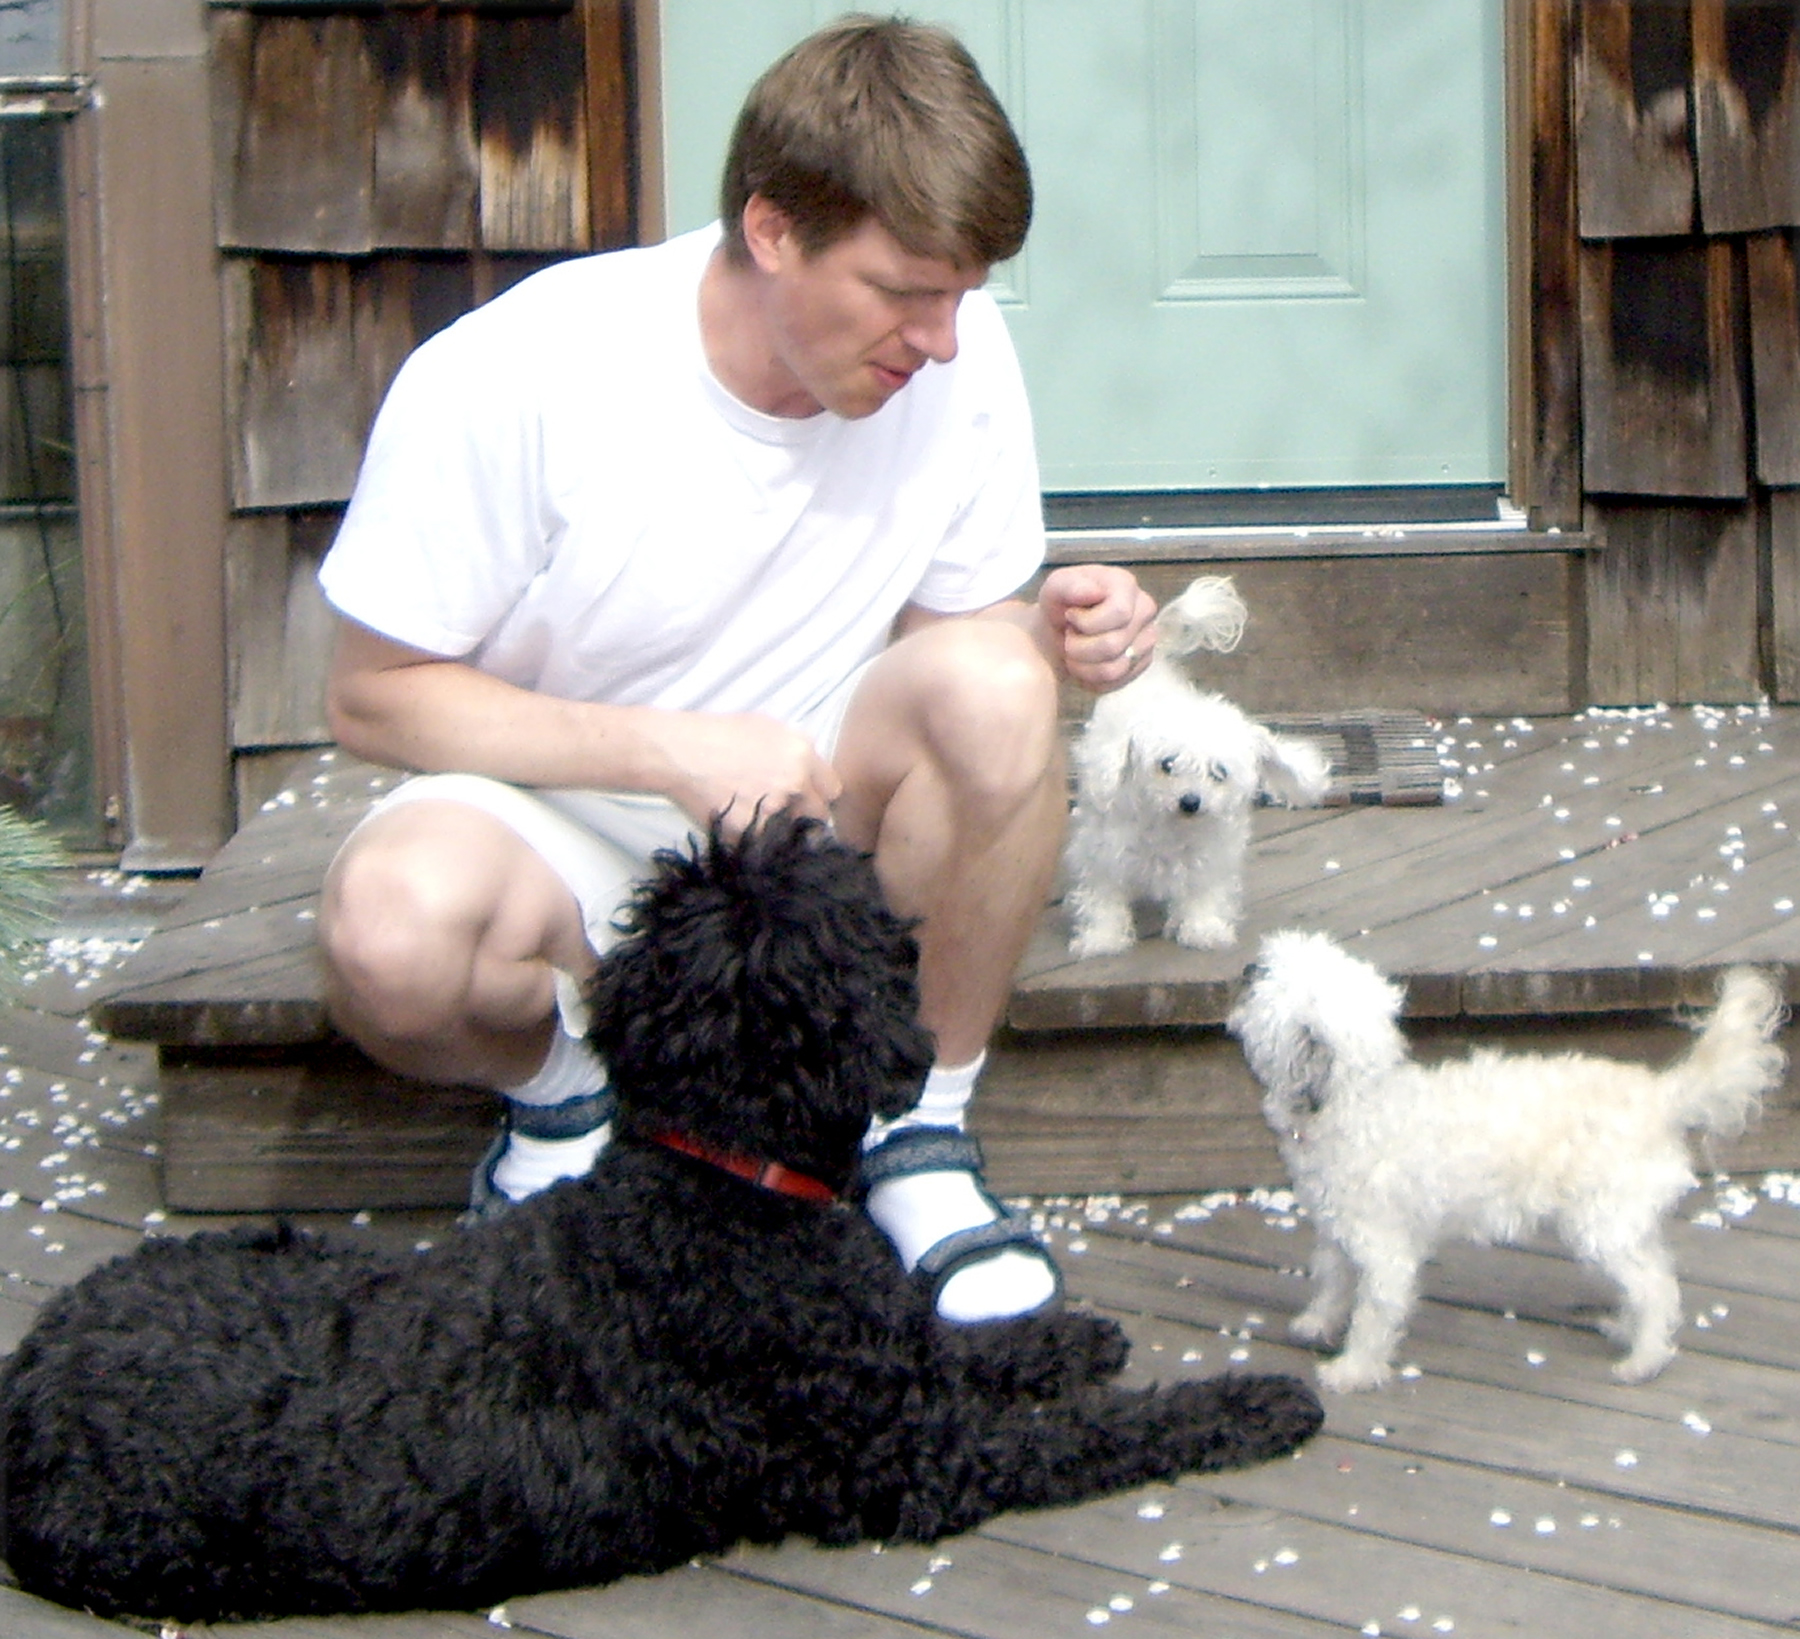 University of Utah biologists K. Gordon Lark and Kevin Chase were part of a multi-institutional team that identified ancient genetic material responsible for making small dogs small. Here, Chase plays with his toy poodle-Maltese mixes, Bonbon and Fille, while Lark's medium-sized Portugese water dog, Mopsa, rests at Chase's feet.